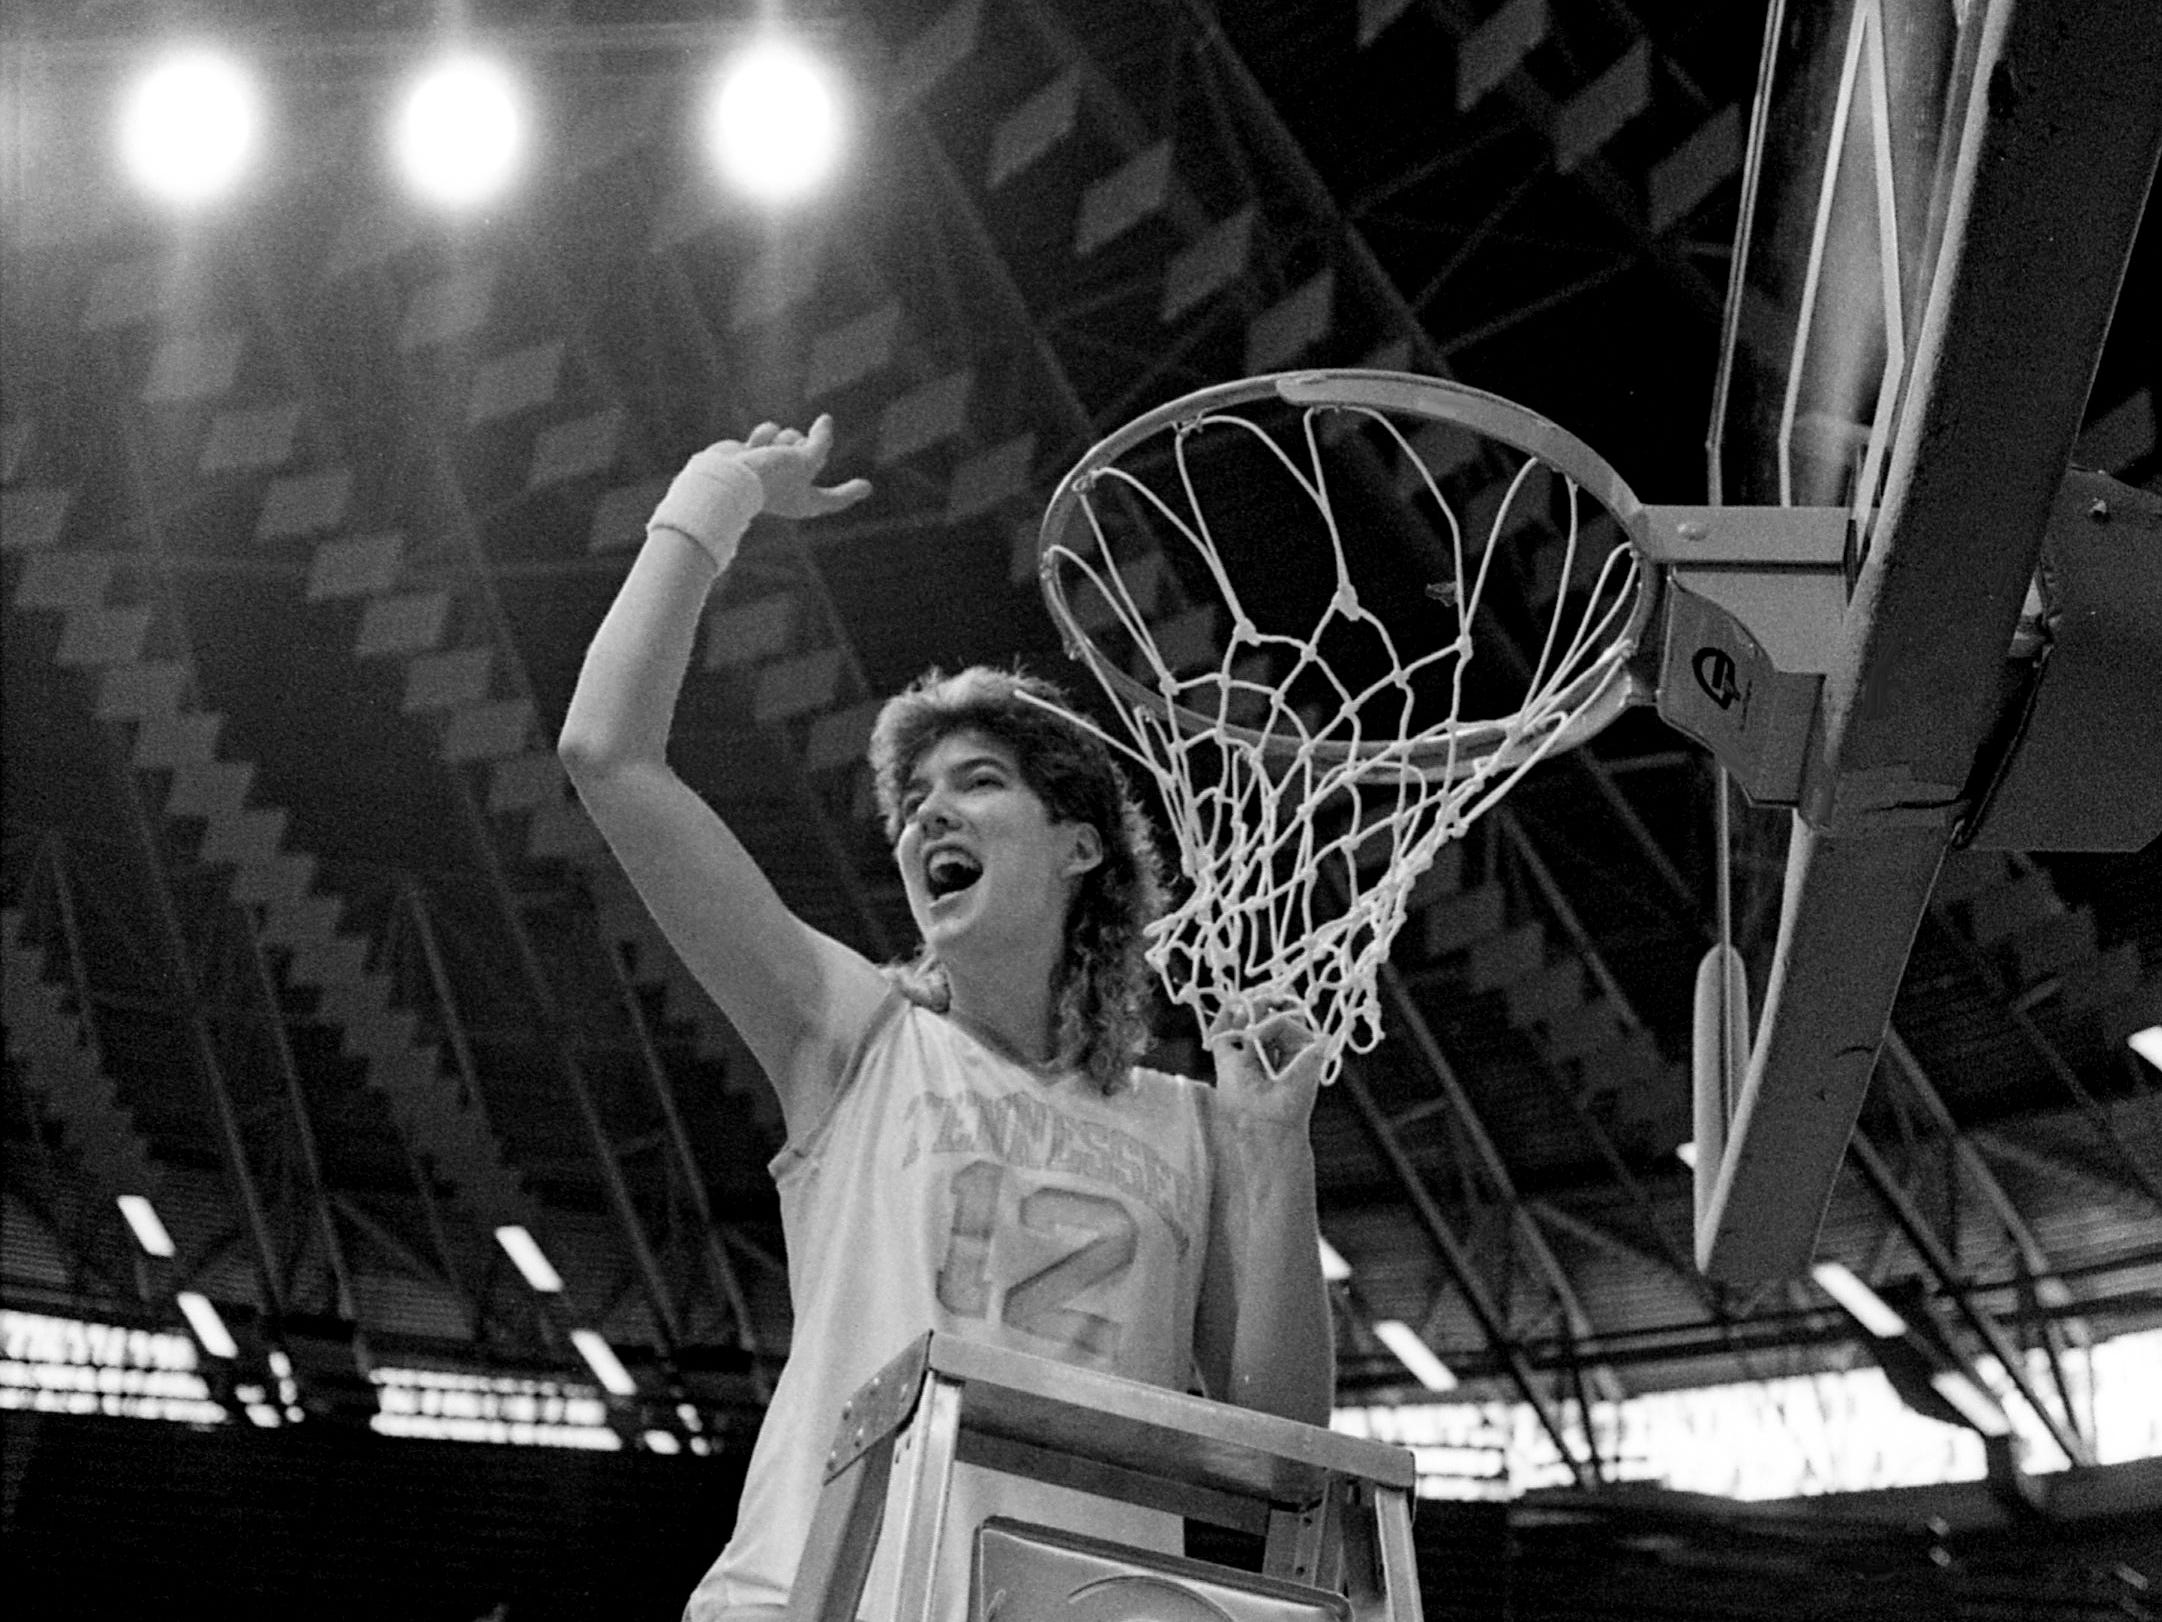 Tennessee senior Sheila Frost, a Pulaski native, waves to the crowd as she prepares to help cut down the net after the Lady Vols 94-80 victory over Long Beach State in the NCAA East Regional championship game at Western Kentucky's Diddle Arena in Bowling Green, Kentucky, March 25, 1989. Frost, along with fellow seniors Bridgette Gordon and Melissa McCray, became the first senior class in the history of collegiate women's basketball to earn Final Four berths in each year of their eligibility.